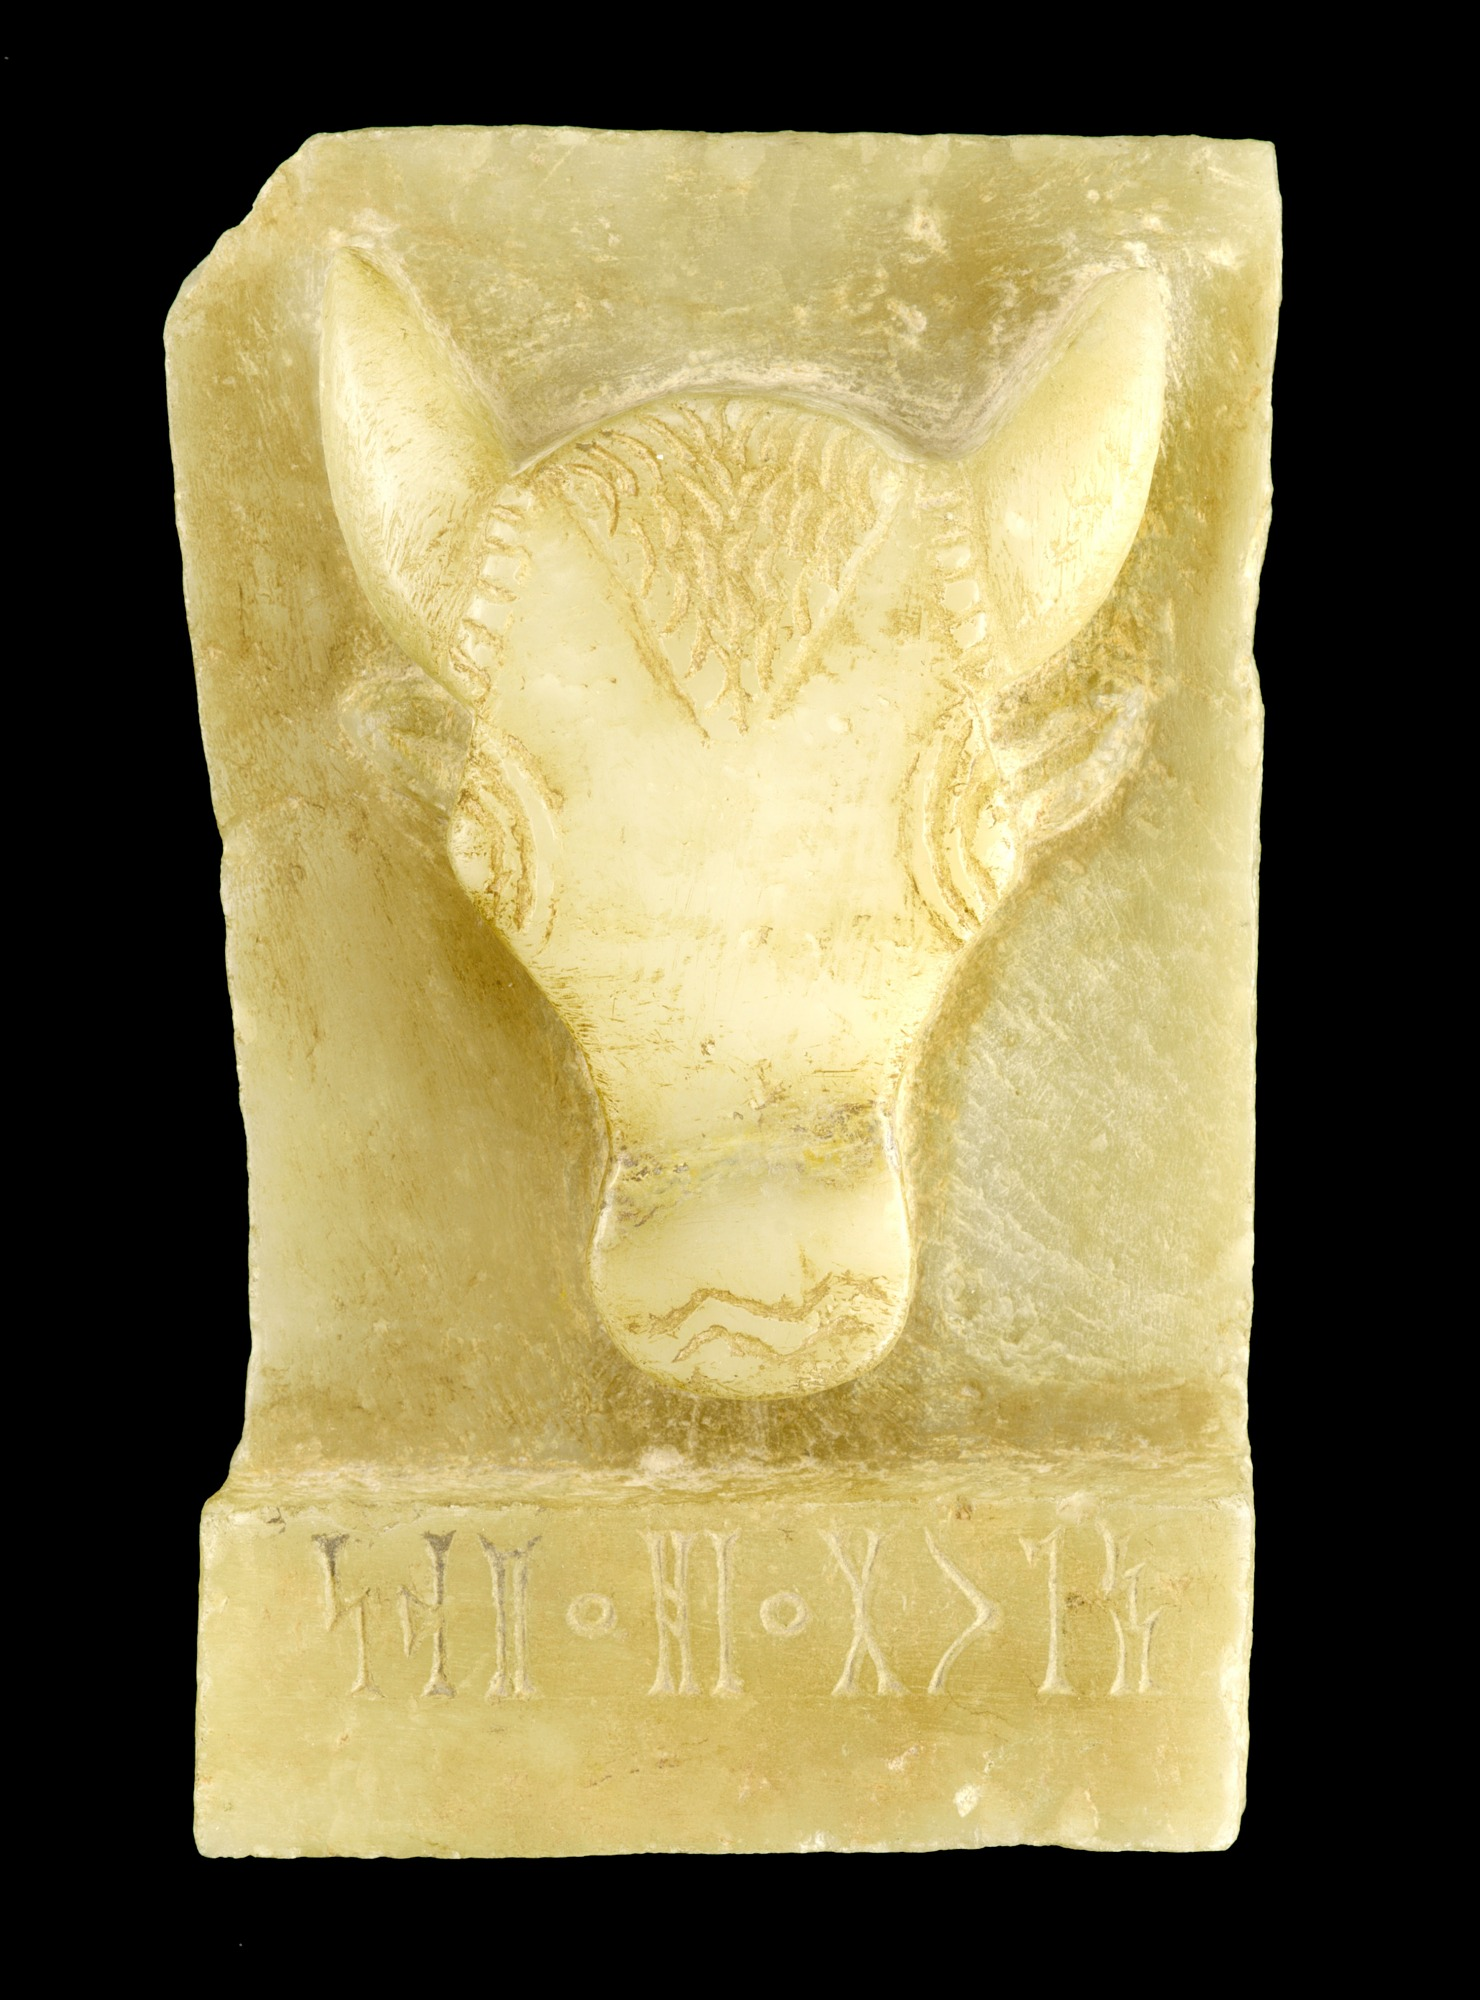 : Stele with Bull's Head